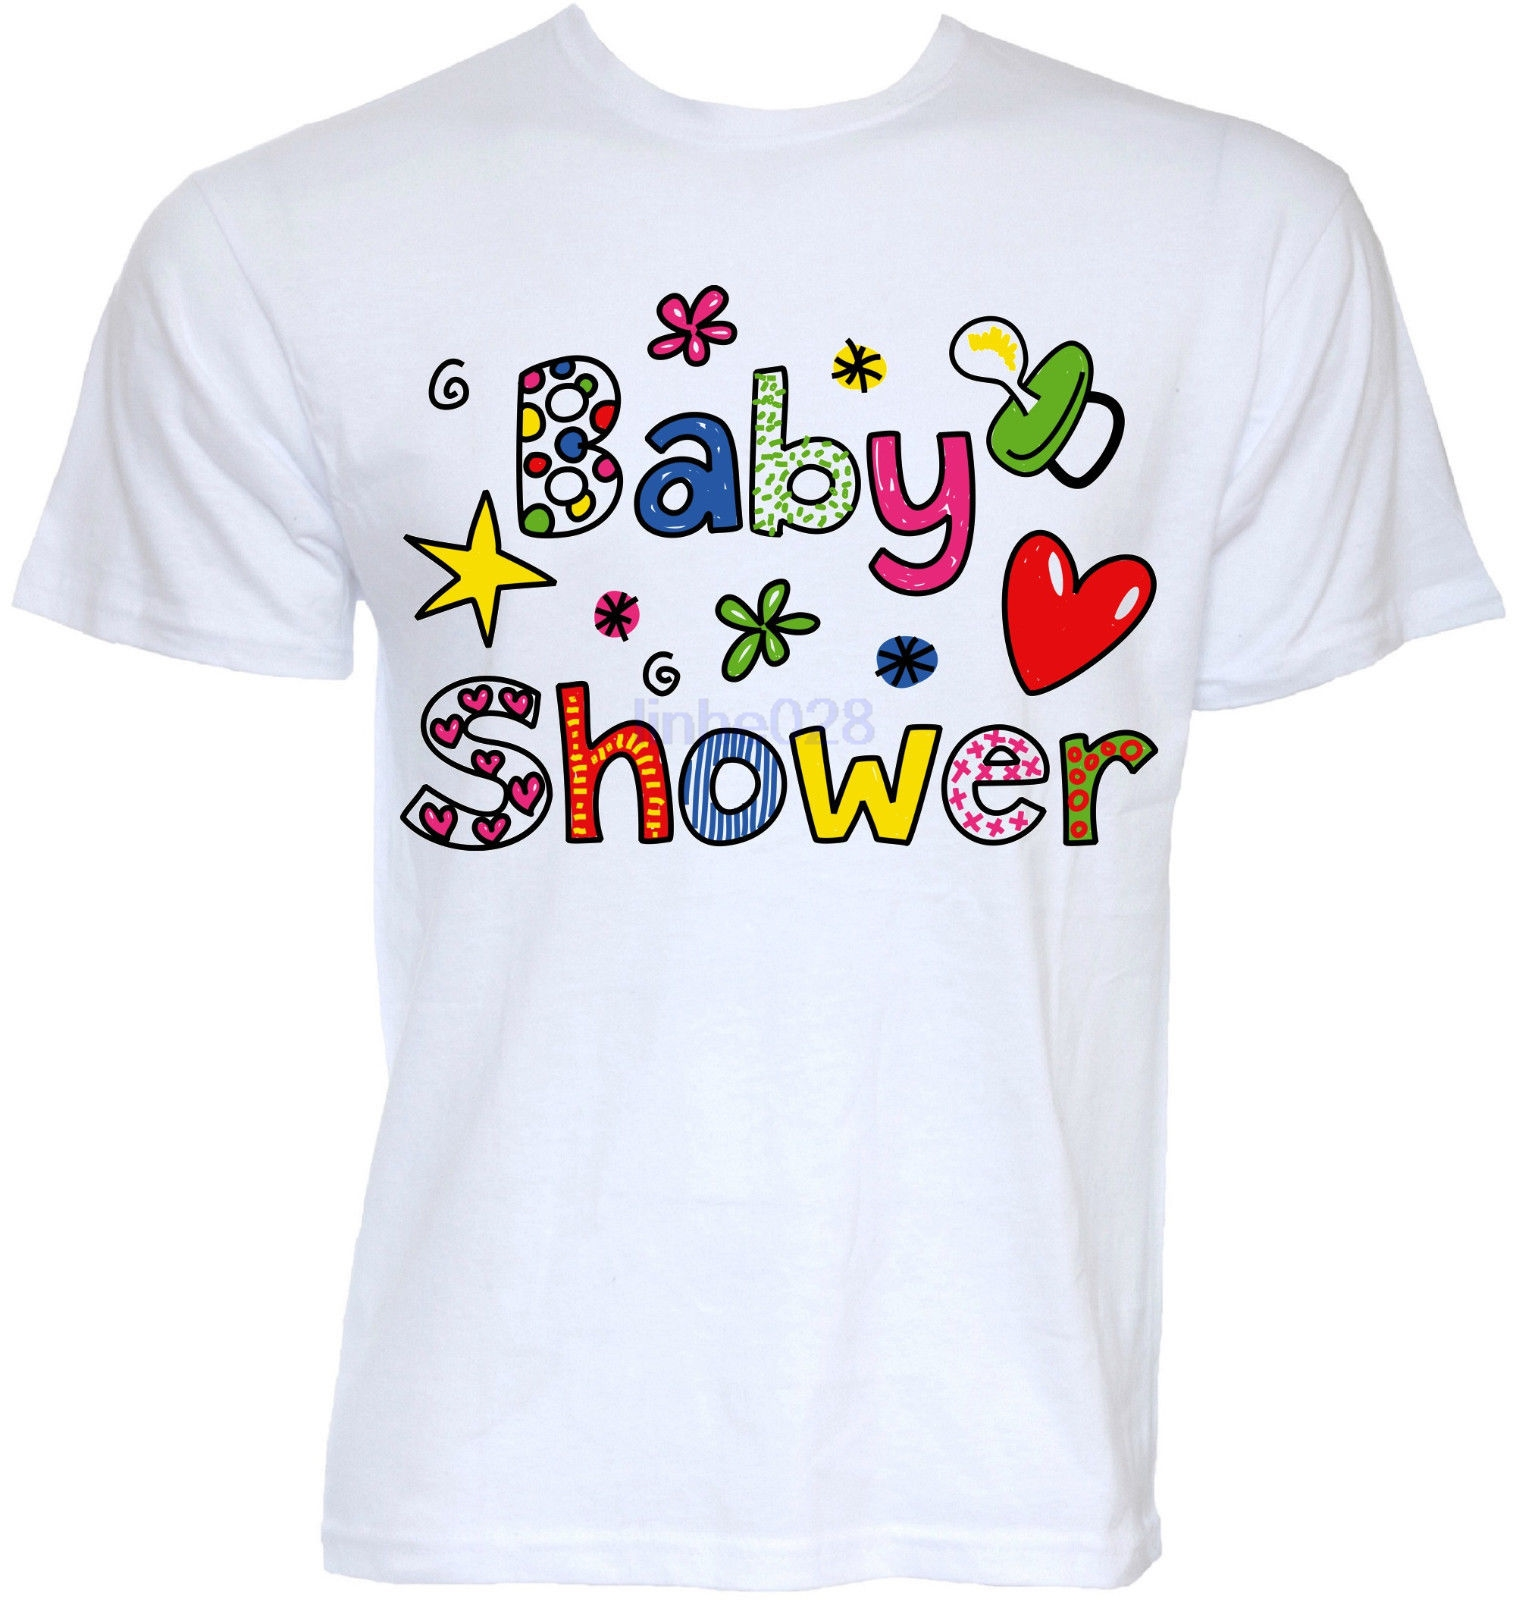 FUNNY COOL NOVELTY NEW BABY SHOWER MUM PREGNANCY JOKE T SHIRTS MUMMY GIFTS IDEAS T Shirts Casual